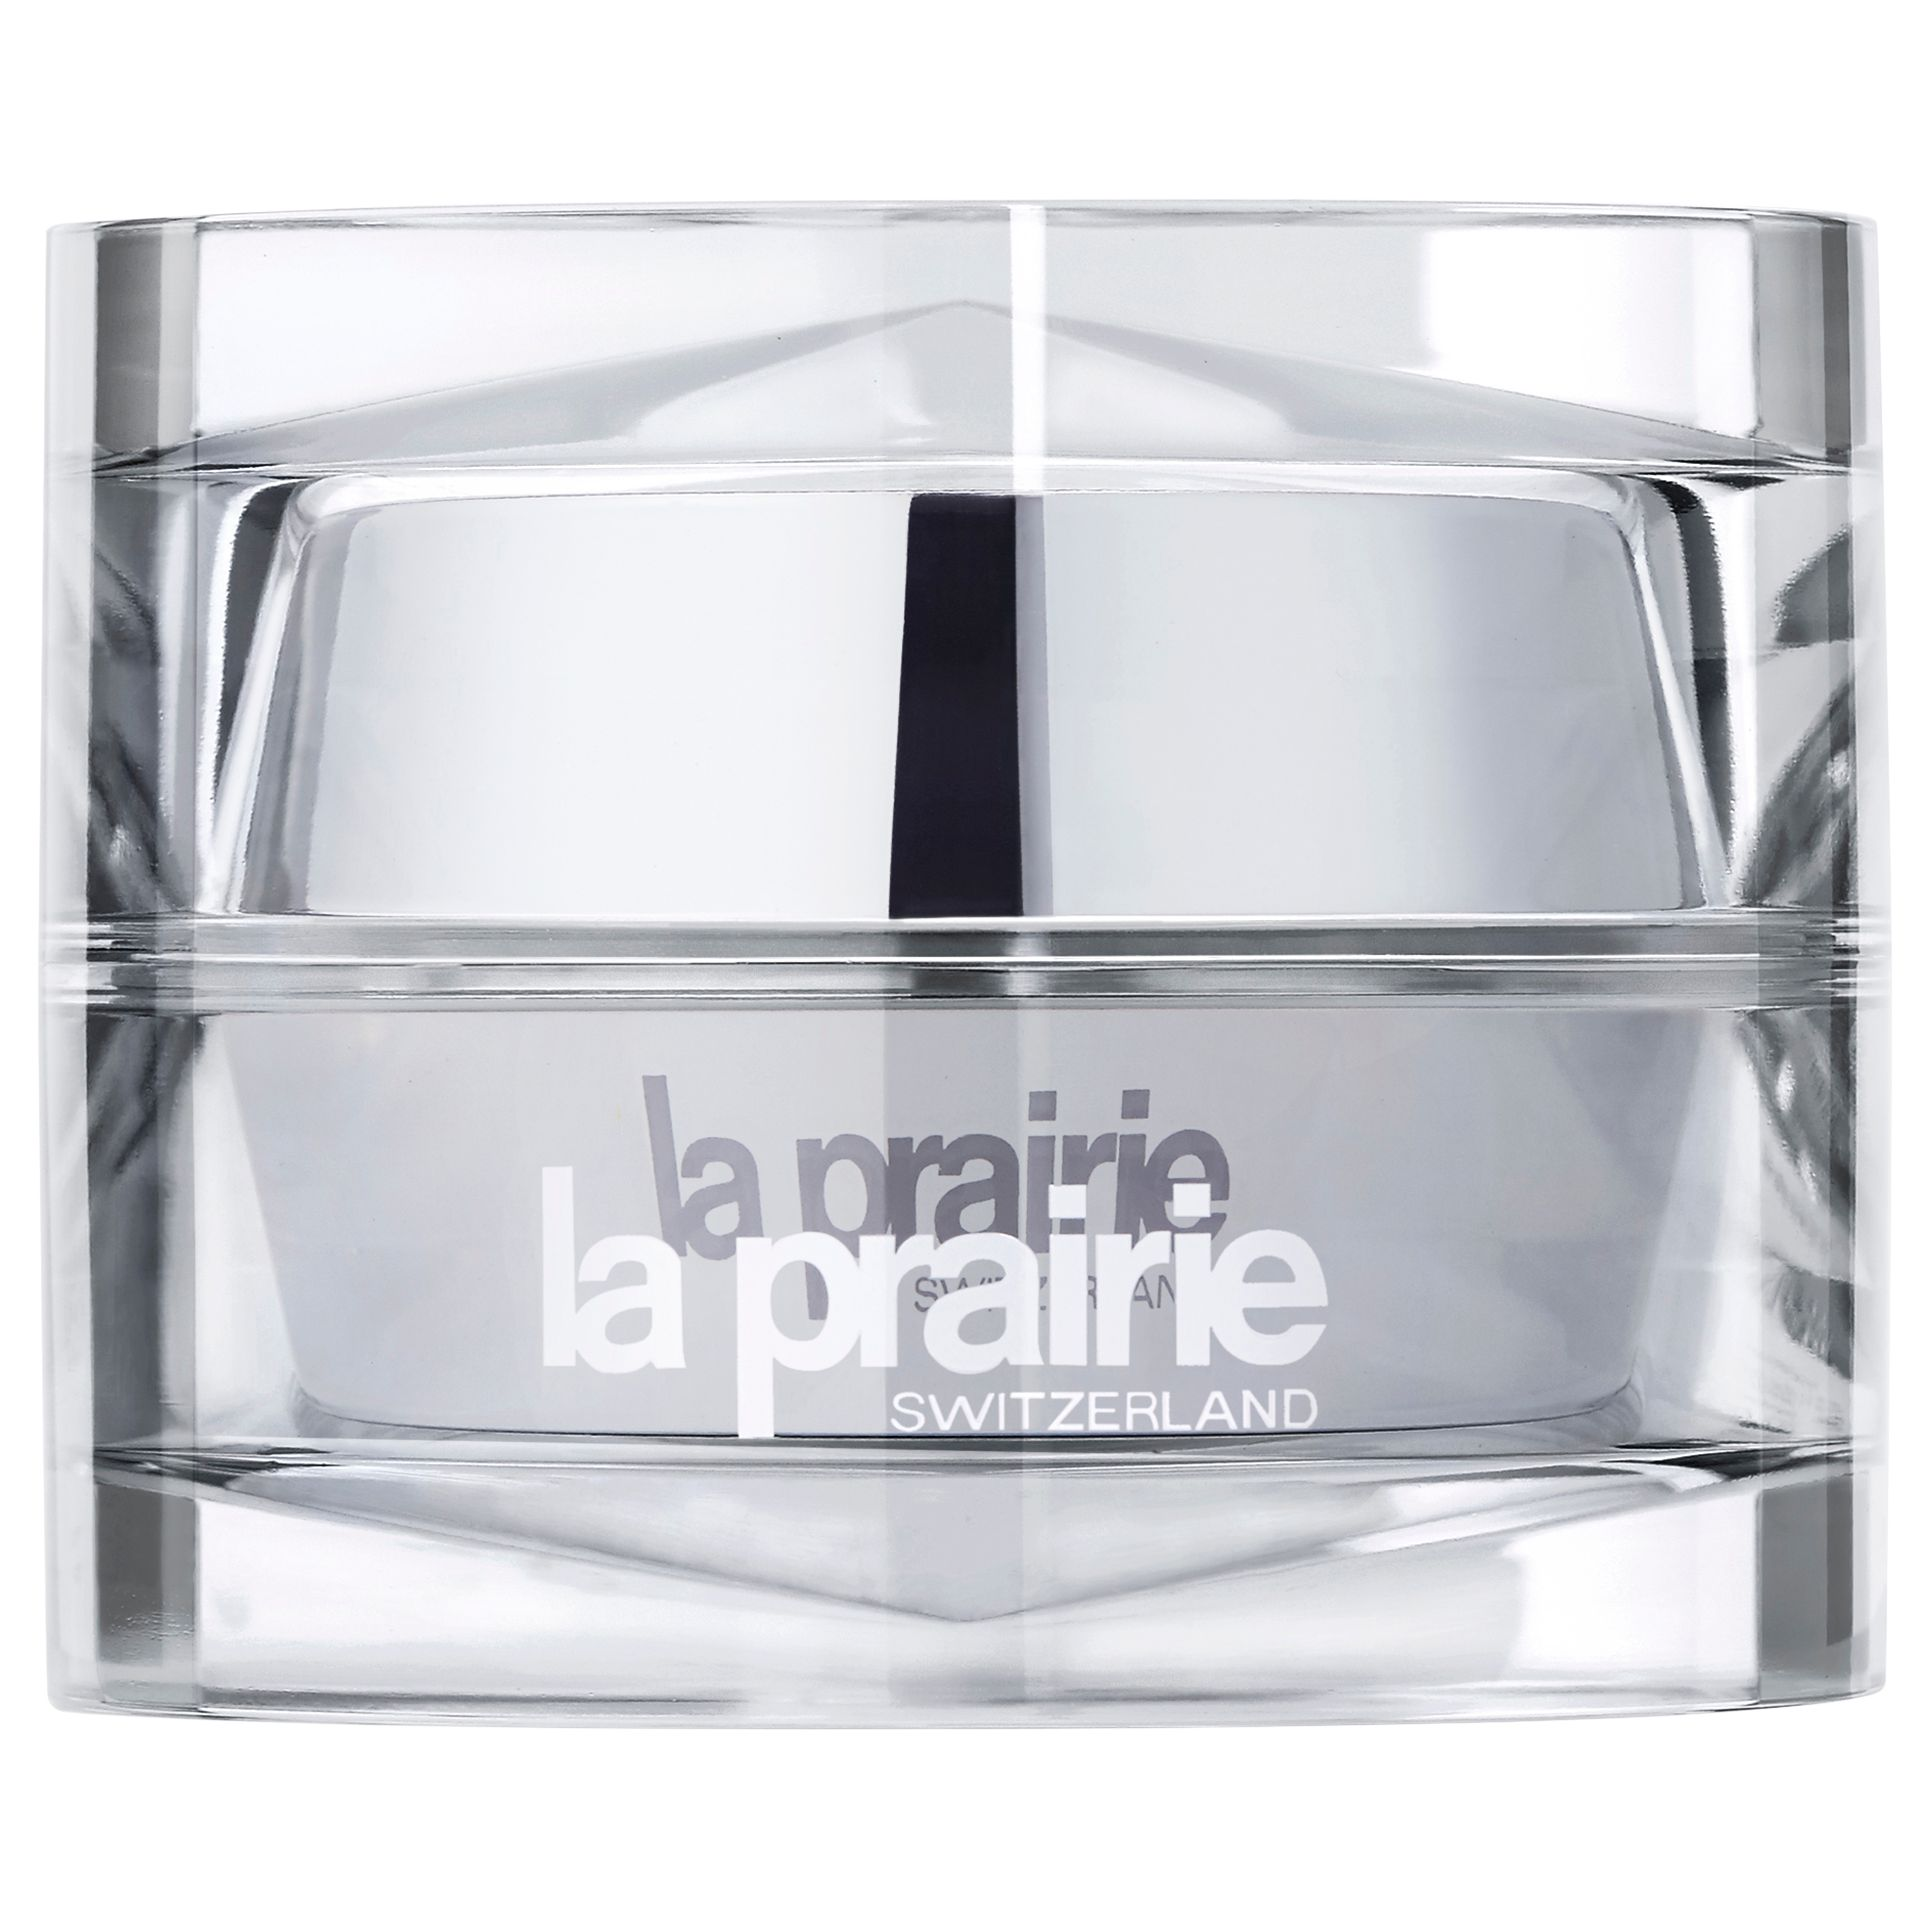 La Prairie La Prairie Cellular Platinum Cream, 30ml